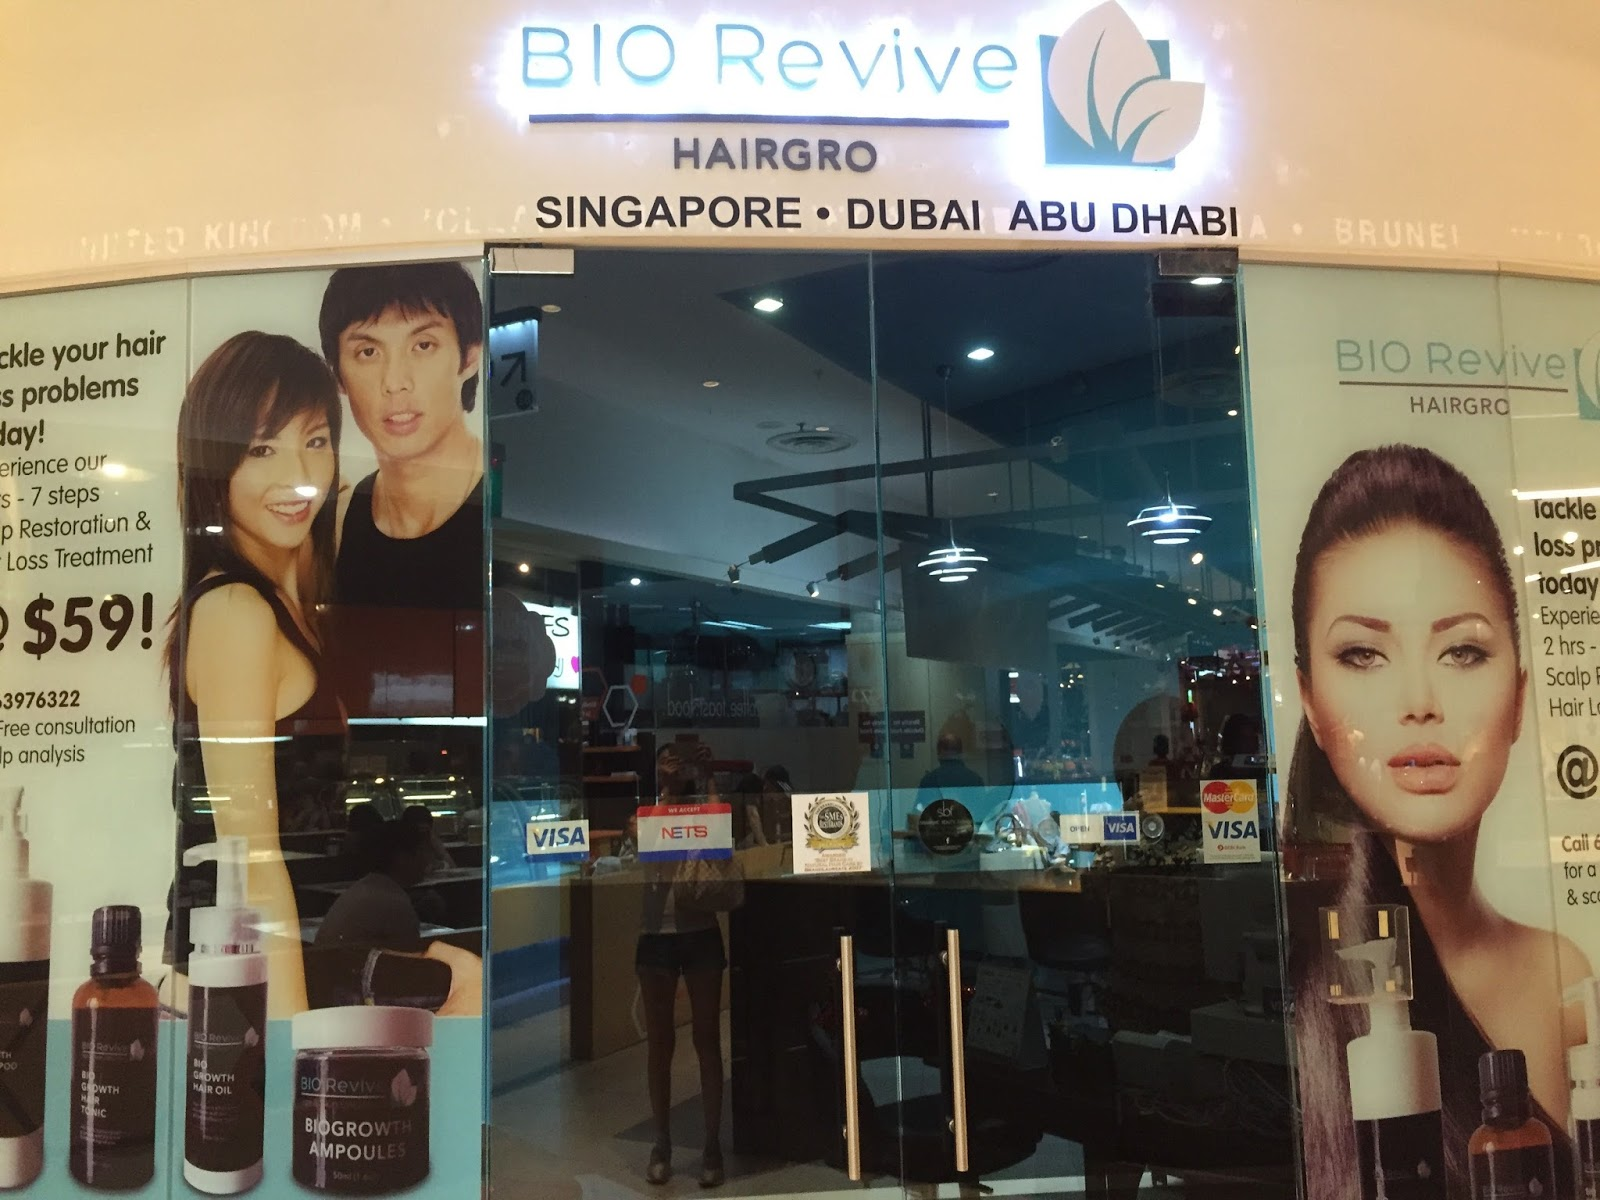 BioRevive HairGro